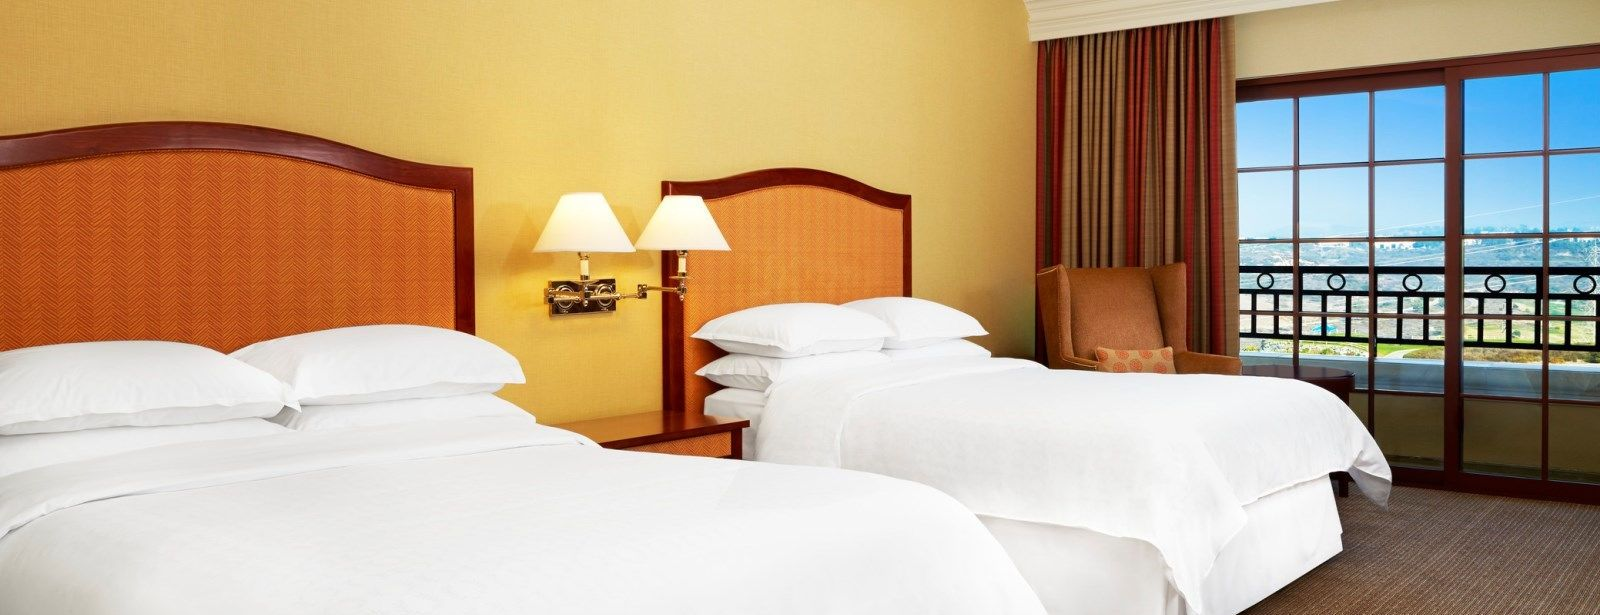 Guestroom Accommodations - Sheraton Carlsbad Resort & Spa